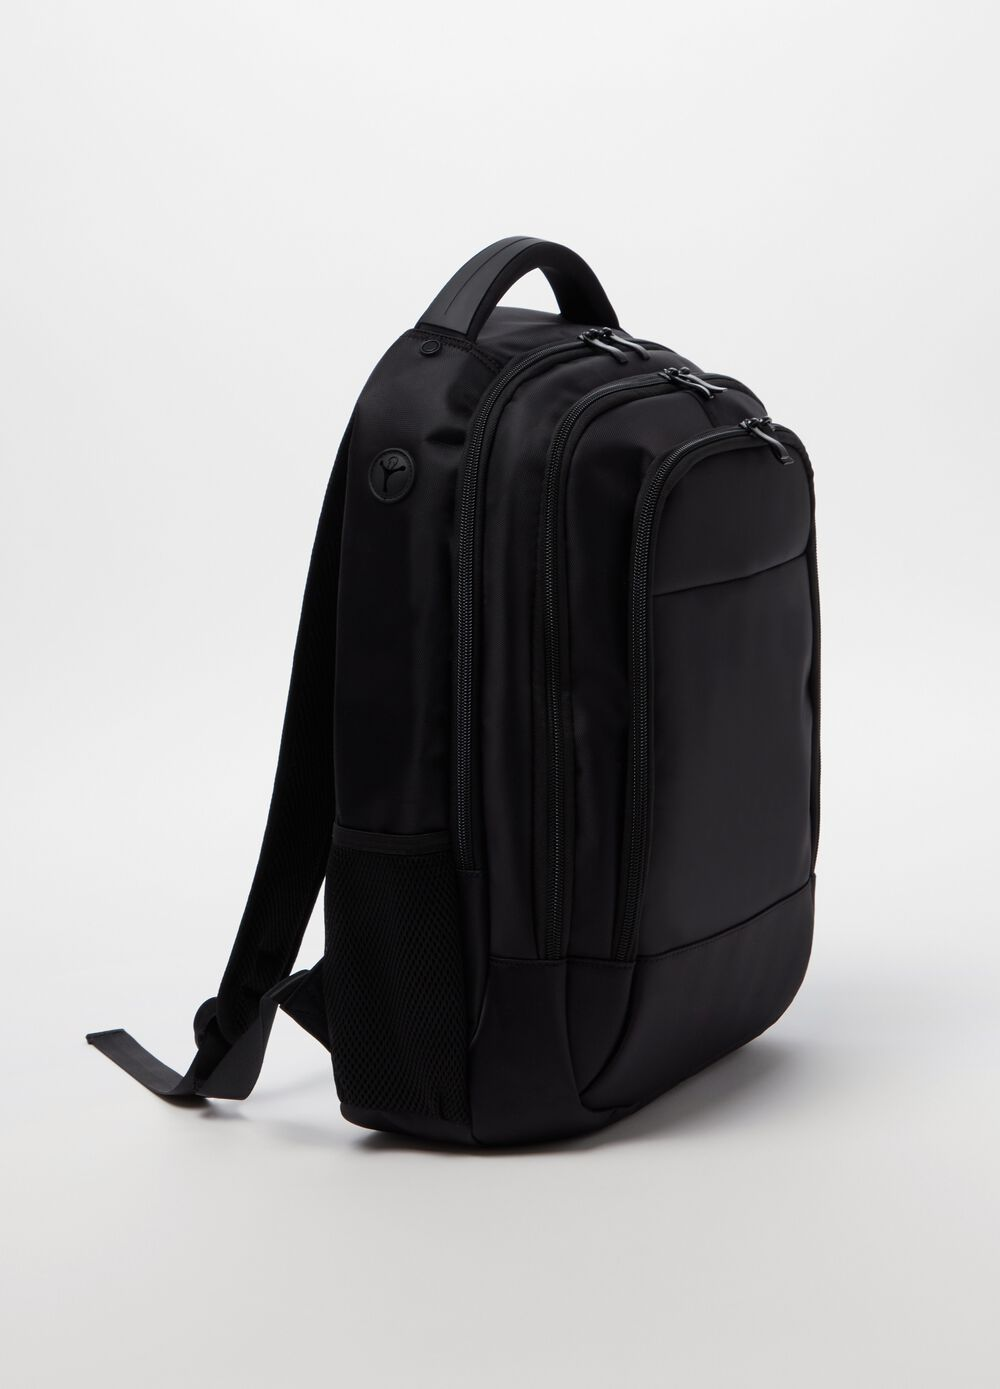 Solid colour backpack with three compartments